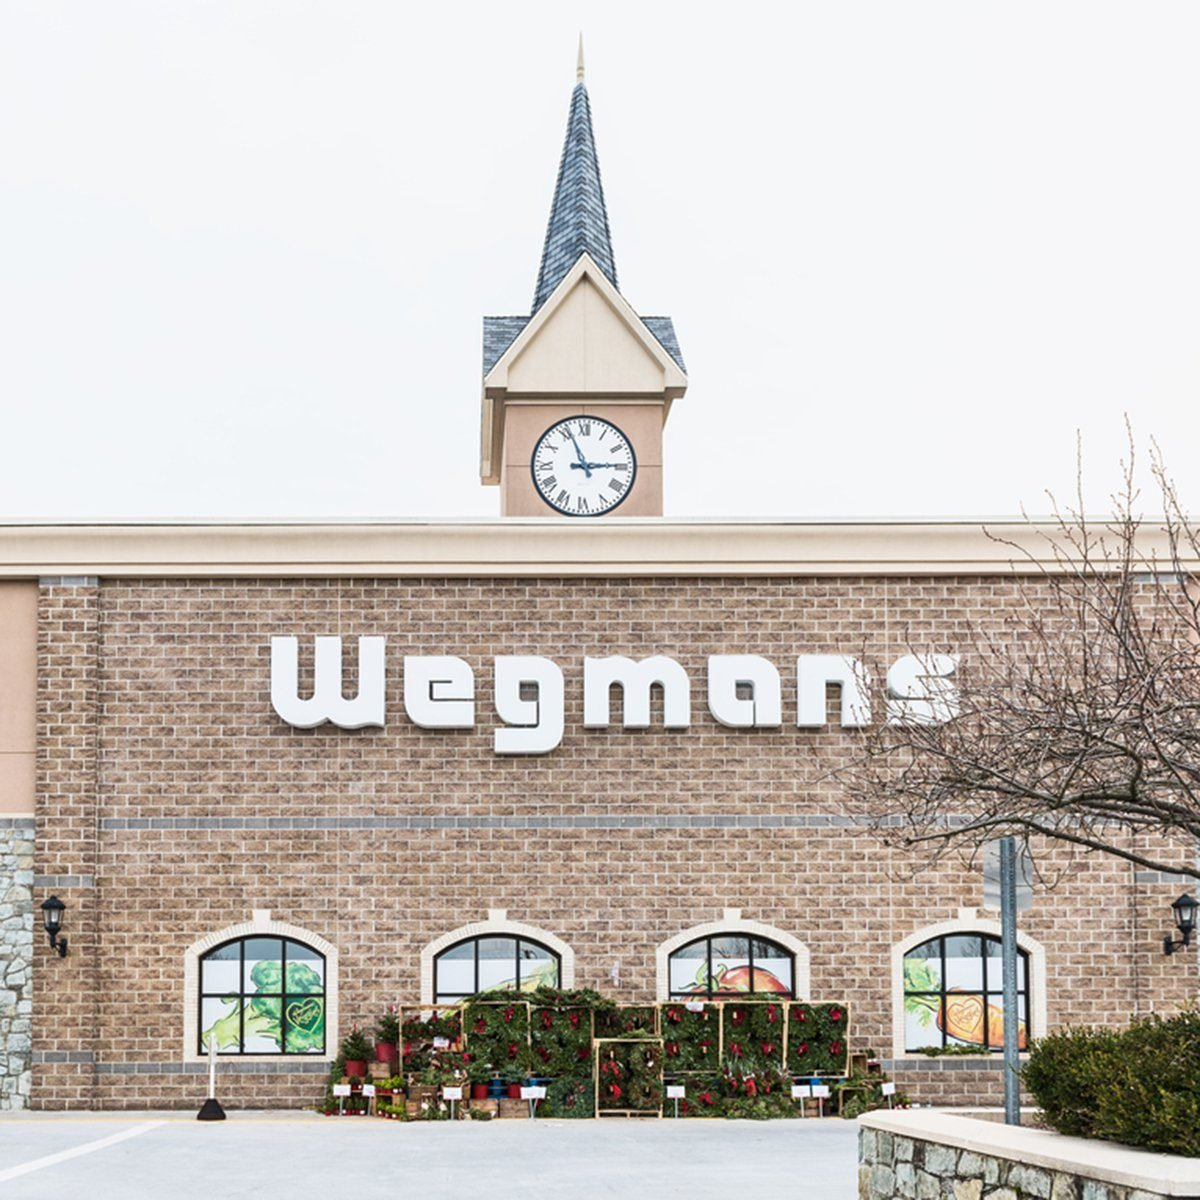 Wegmans grocery store facade and sign with people and Christmas wreath decorations